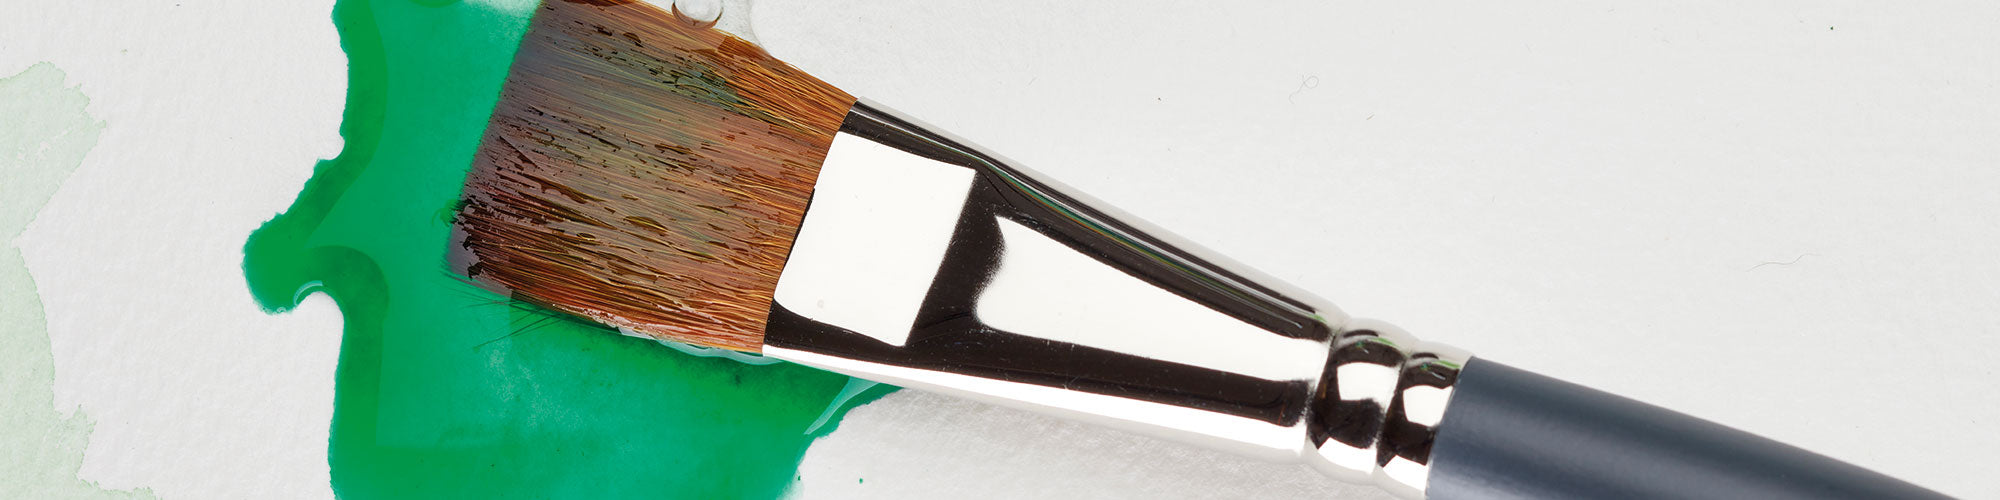 Winsor & Newton new synthetic sable brushes